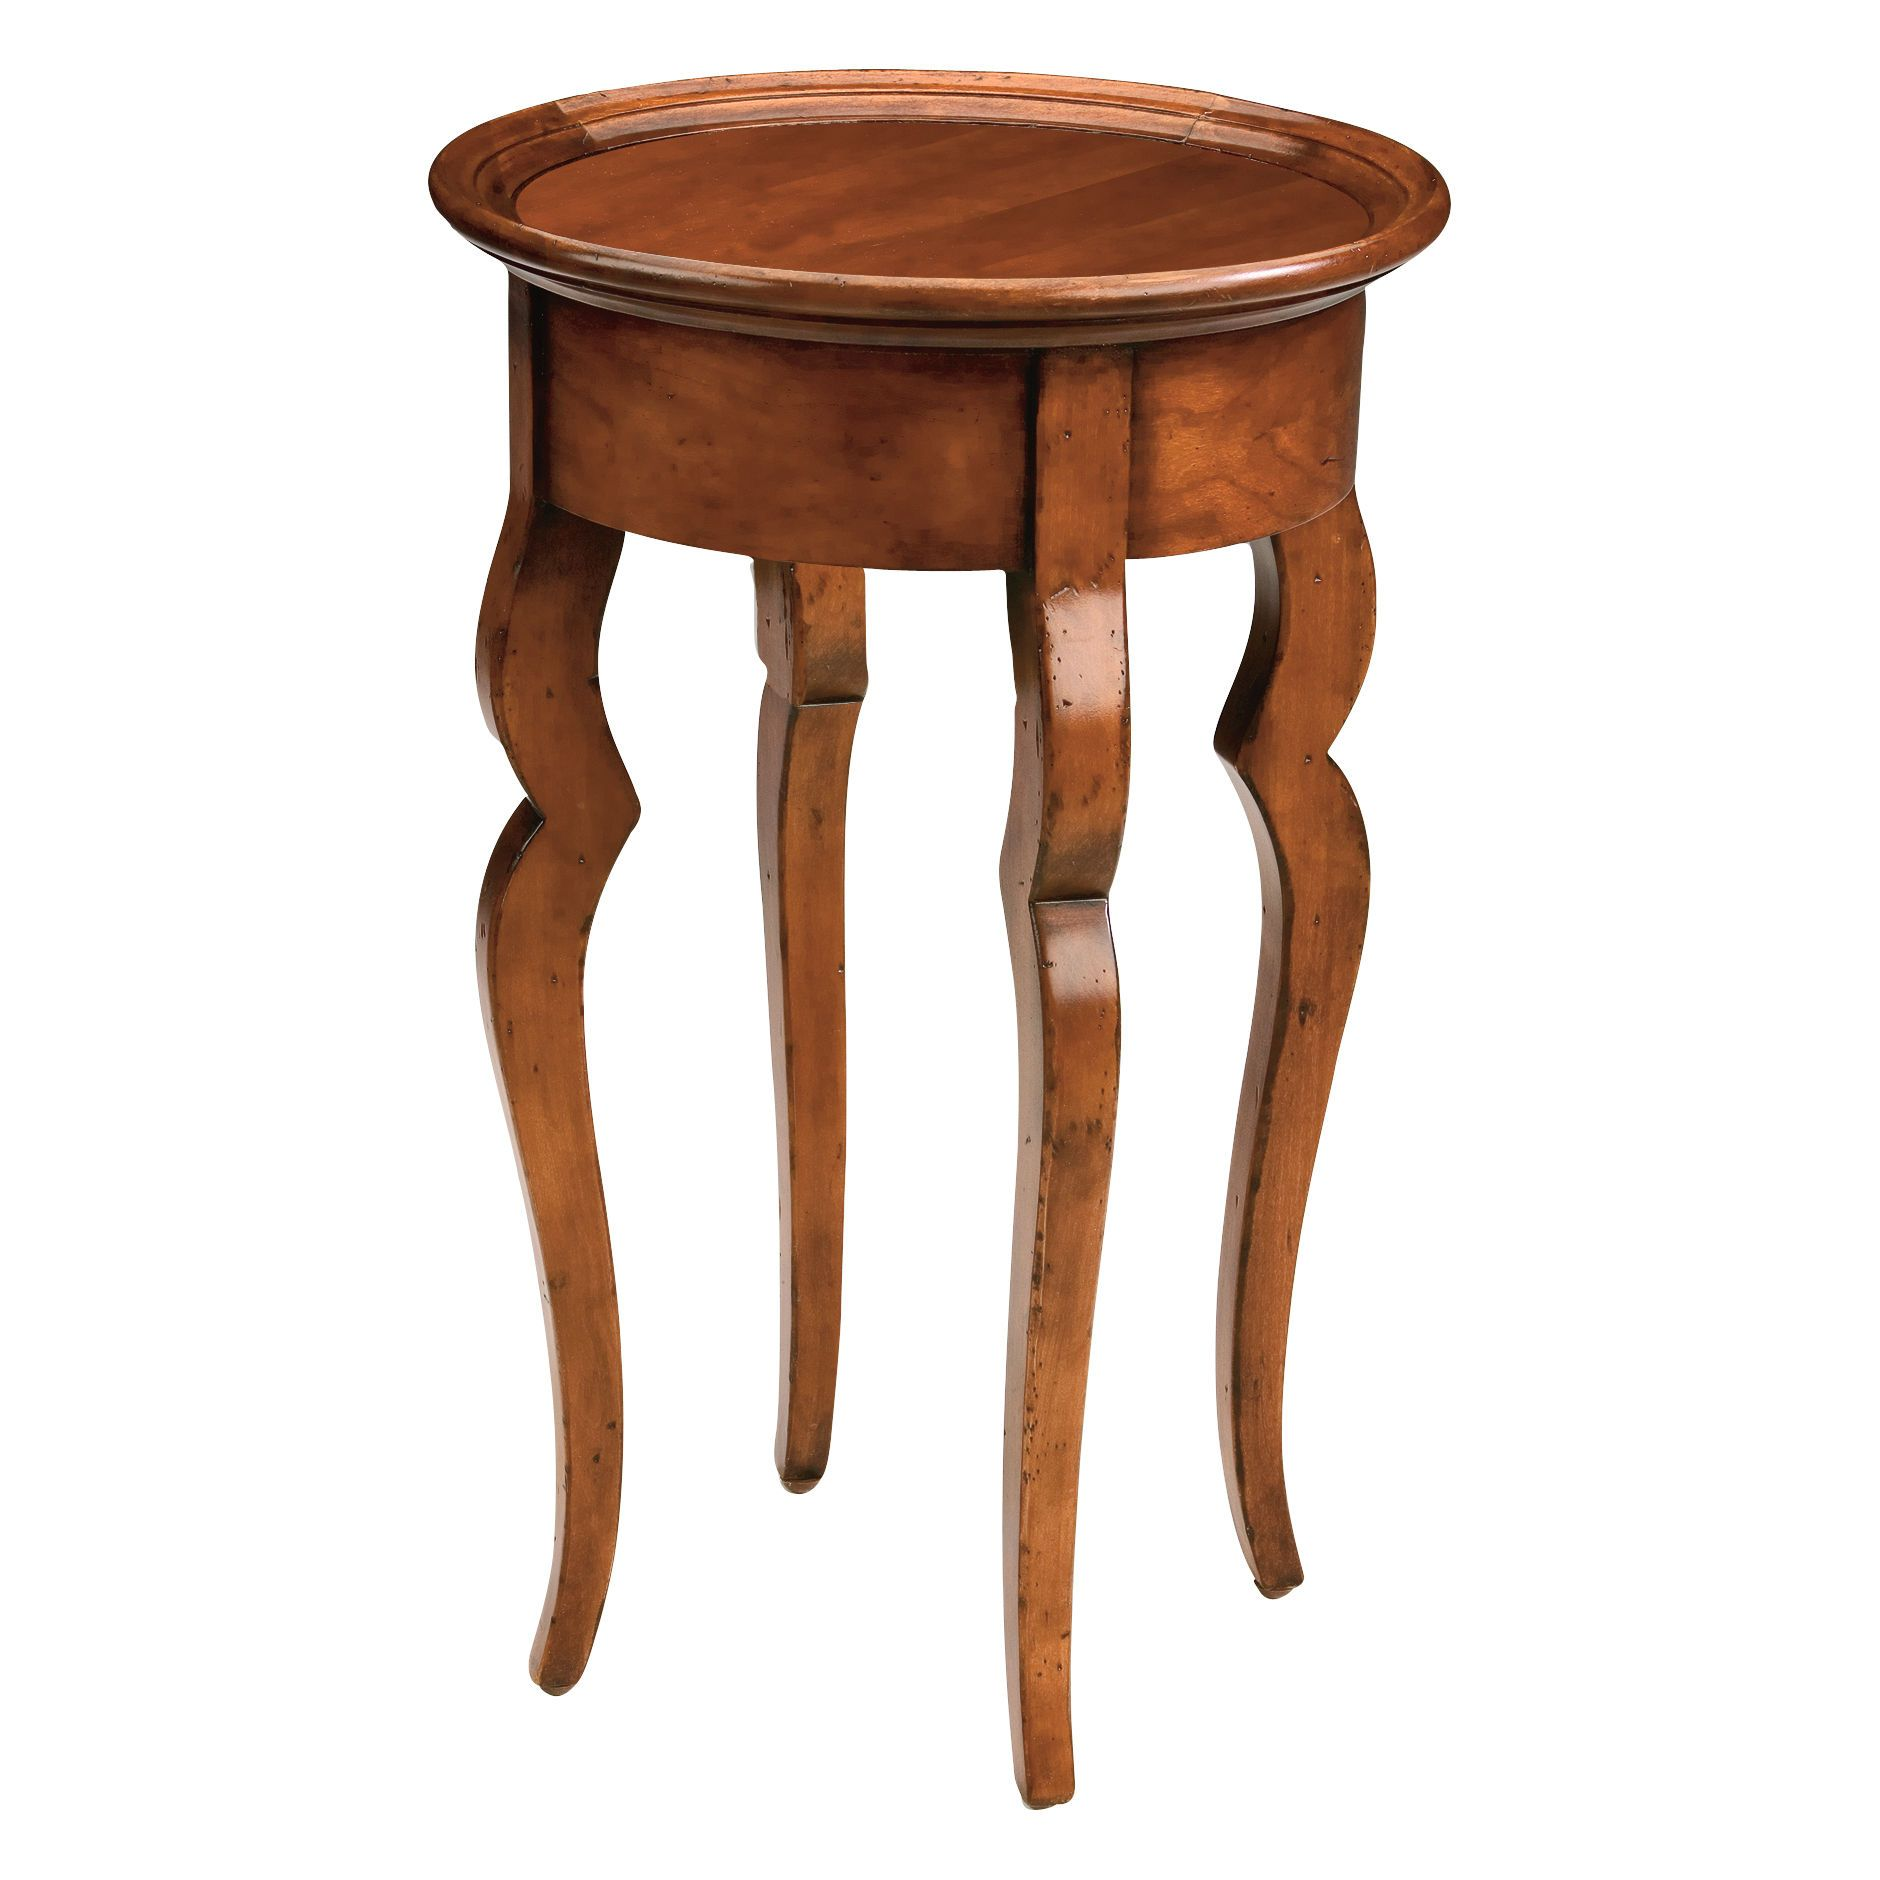 Elisha Round Accent Table - Ethan Allen US, 2nd option for chair by window